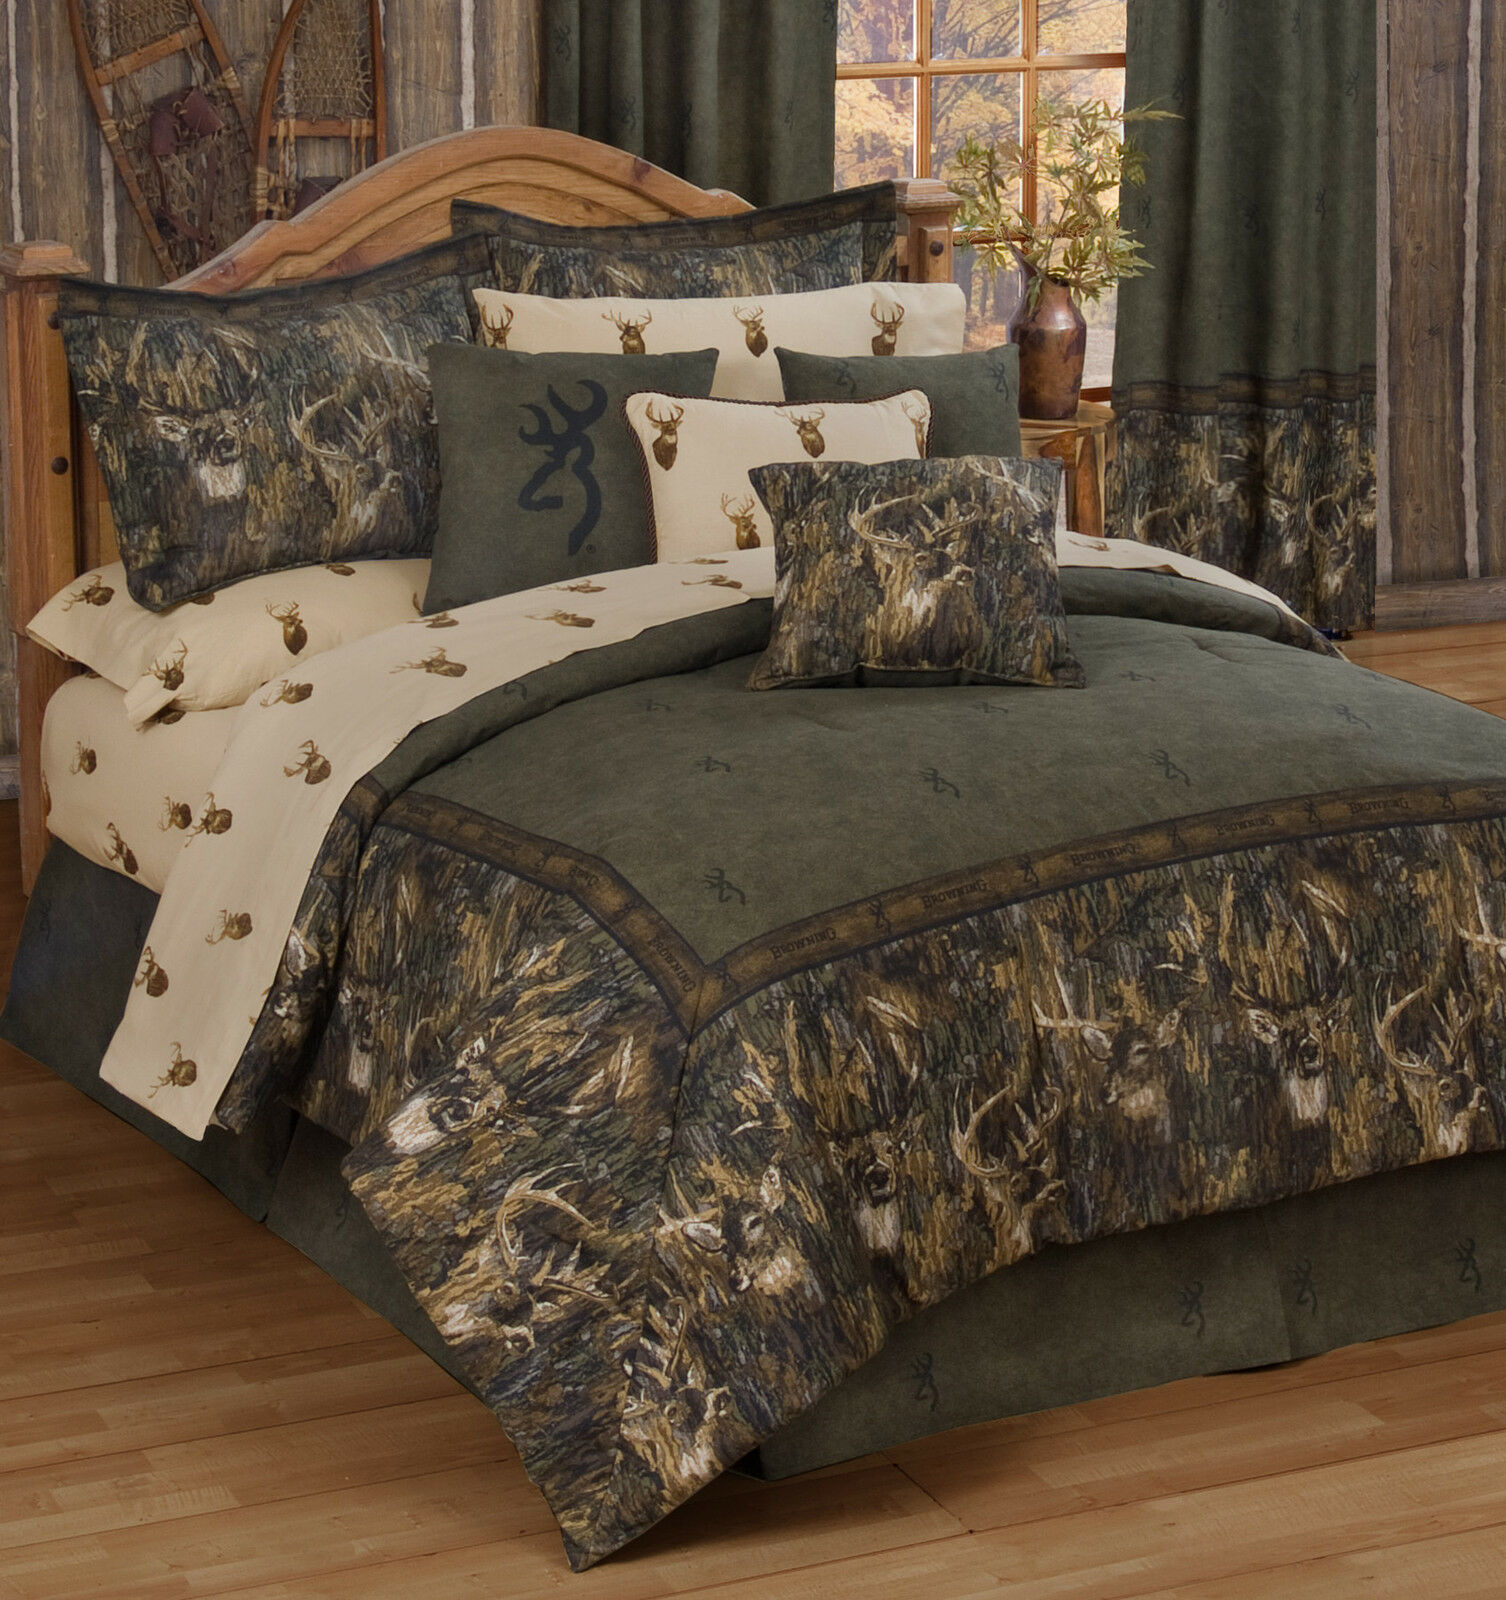 brauning Weißtails Sheets Set - Twin Full Queen King, Cabin Bedding